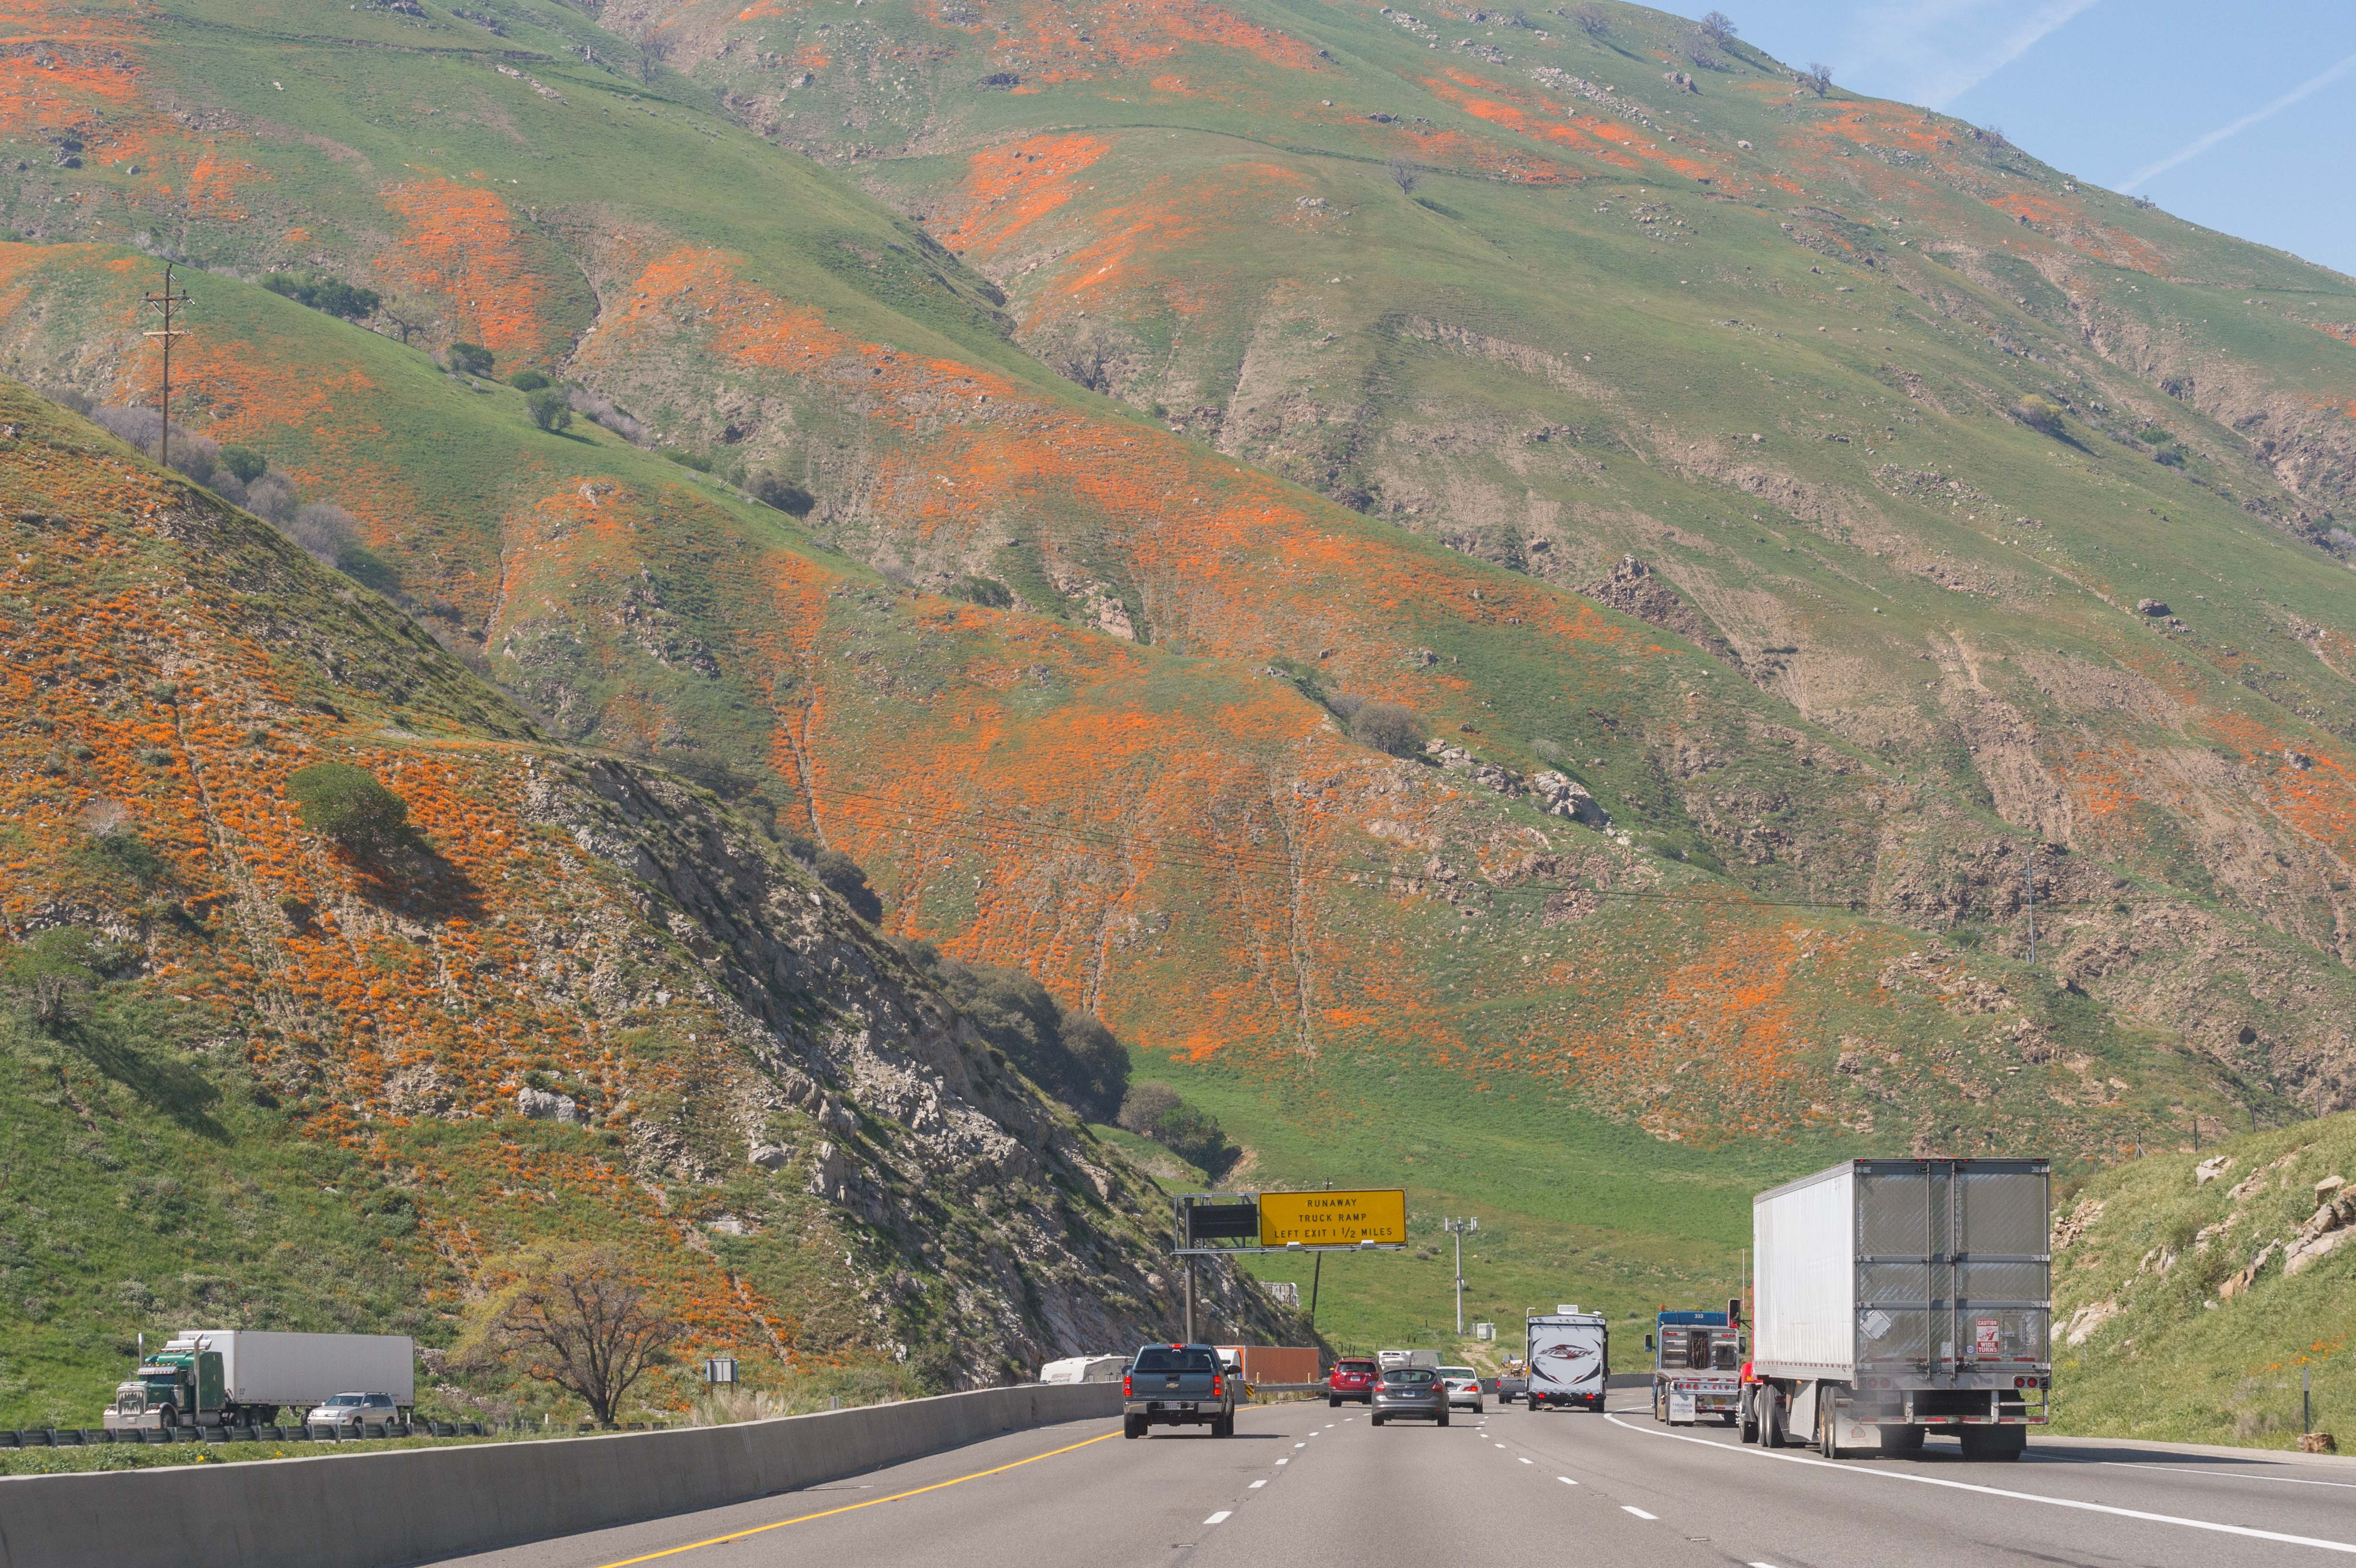 The California poppies are blooming along the Golden State Freeway in the Tejon Pass thanks to El Nino Lite. Photo by Steve Hymon.